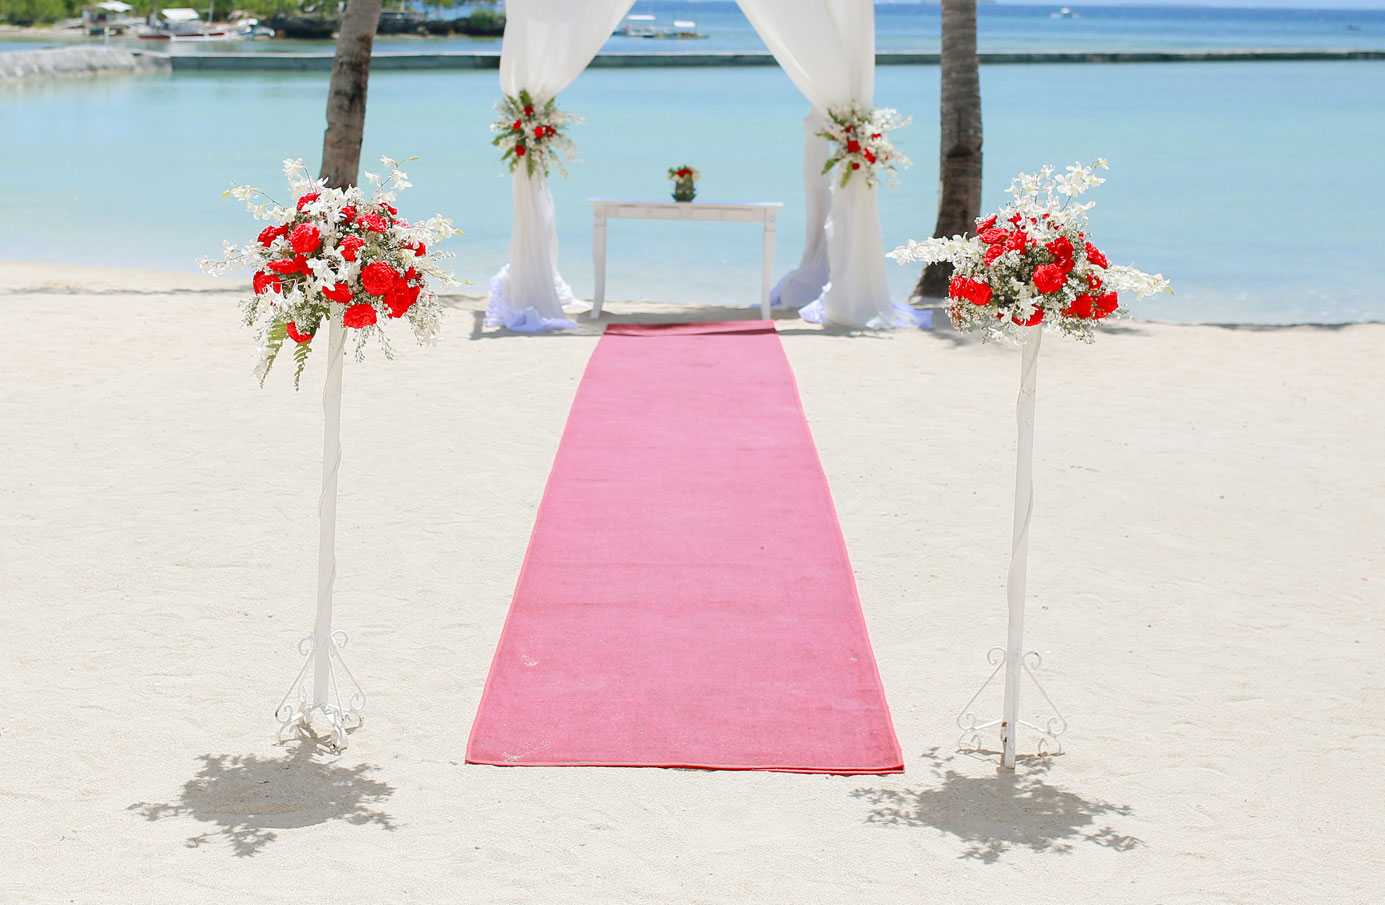 beachweddingdecoration11